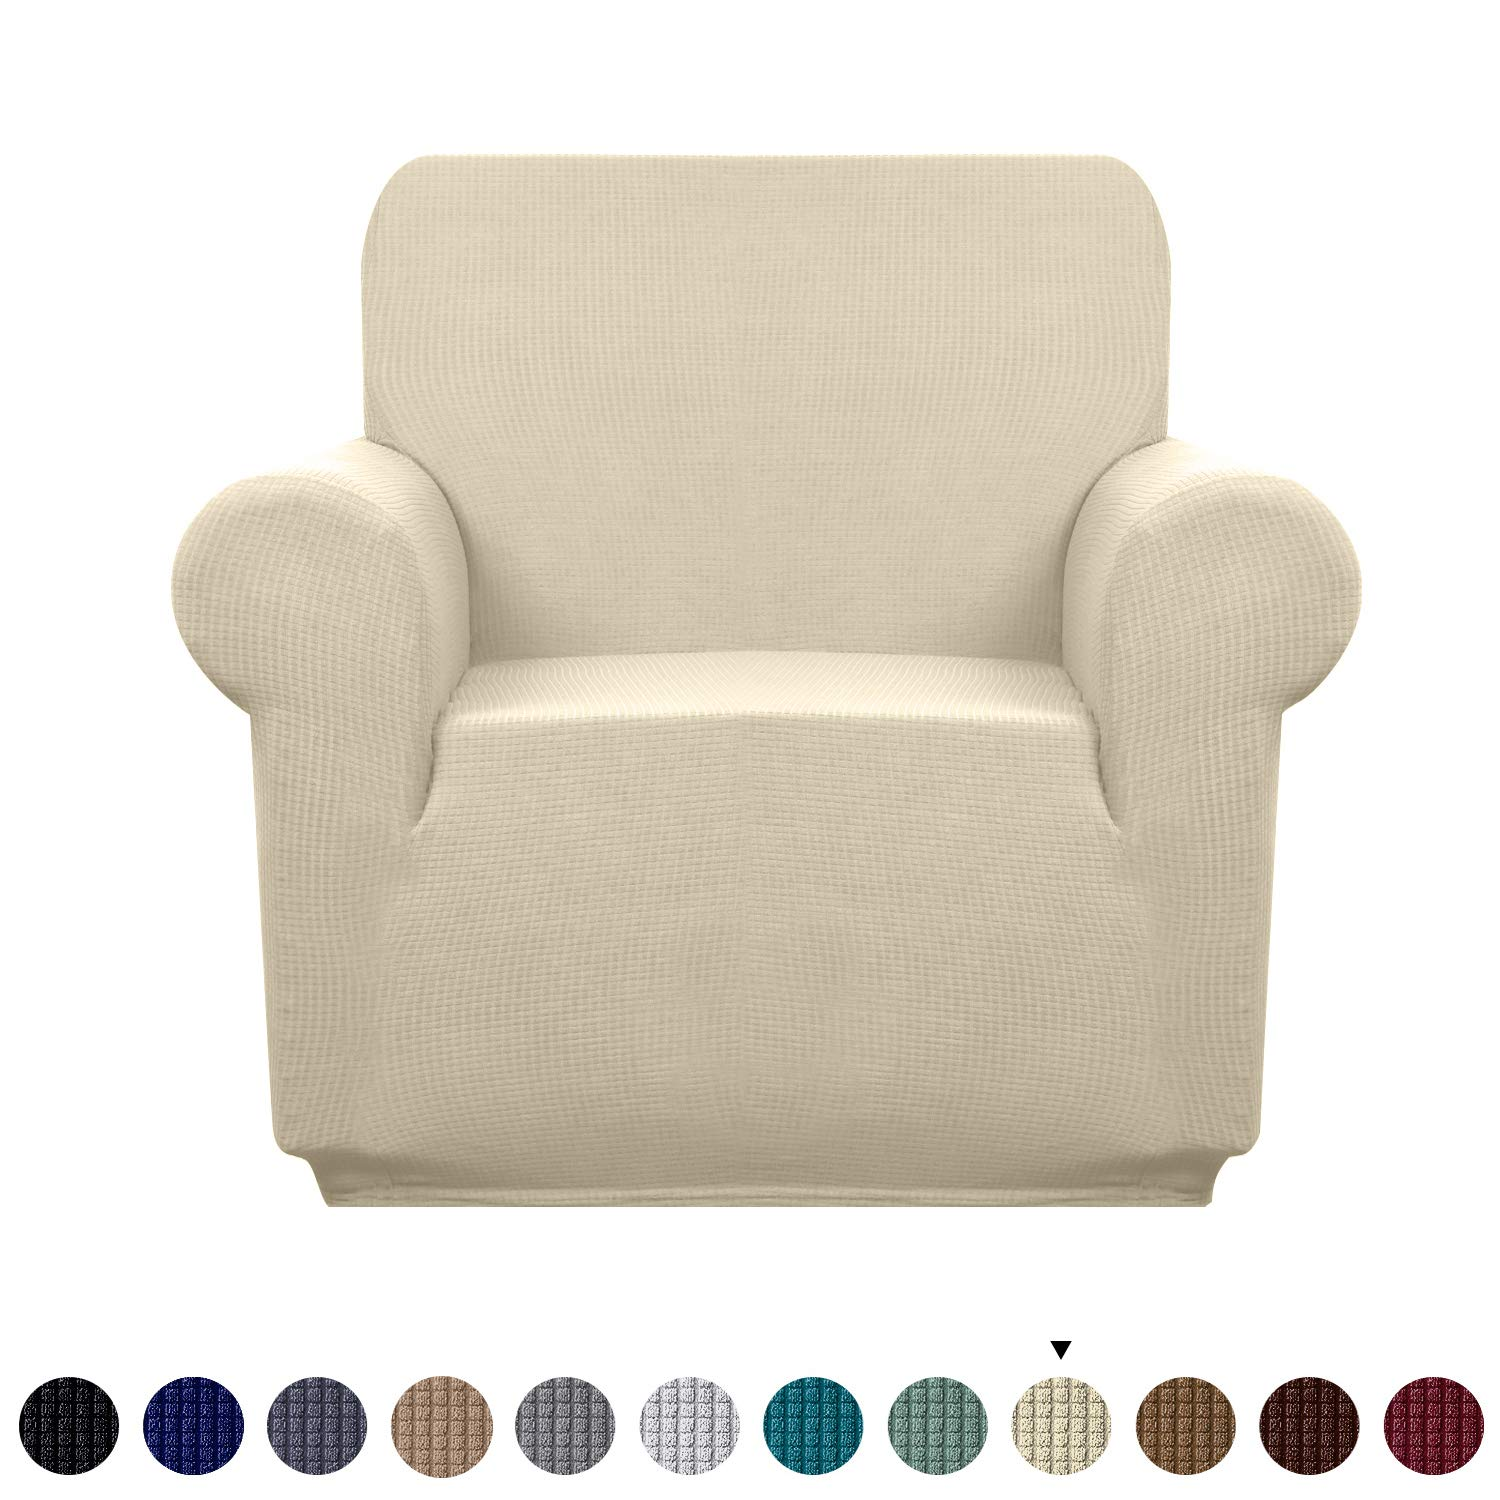 Granbest Premium Water Repellent Sofa Cover High Stretch Couch Slipcover Super Soft Fabric Couch Cover (Beige, Chair)